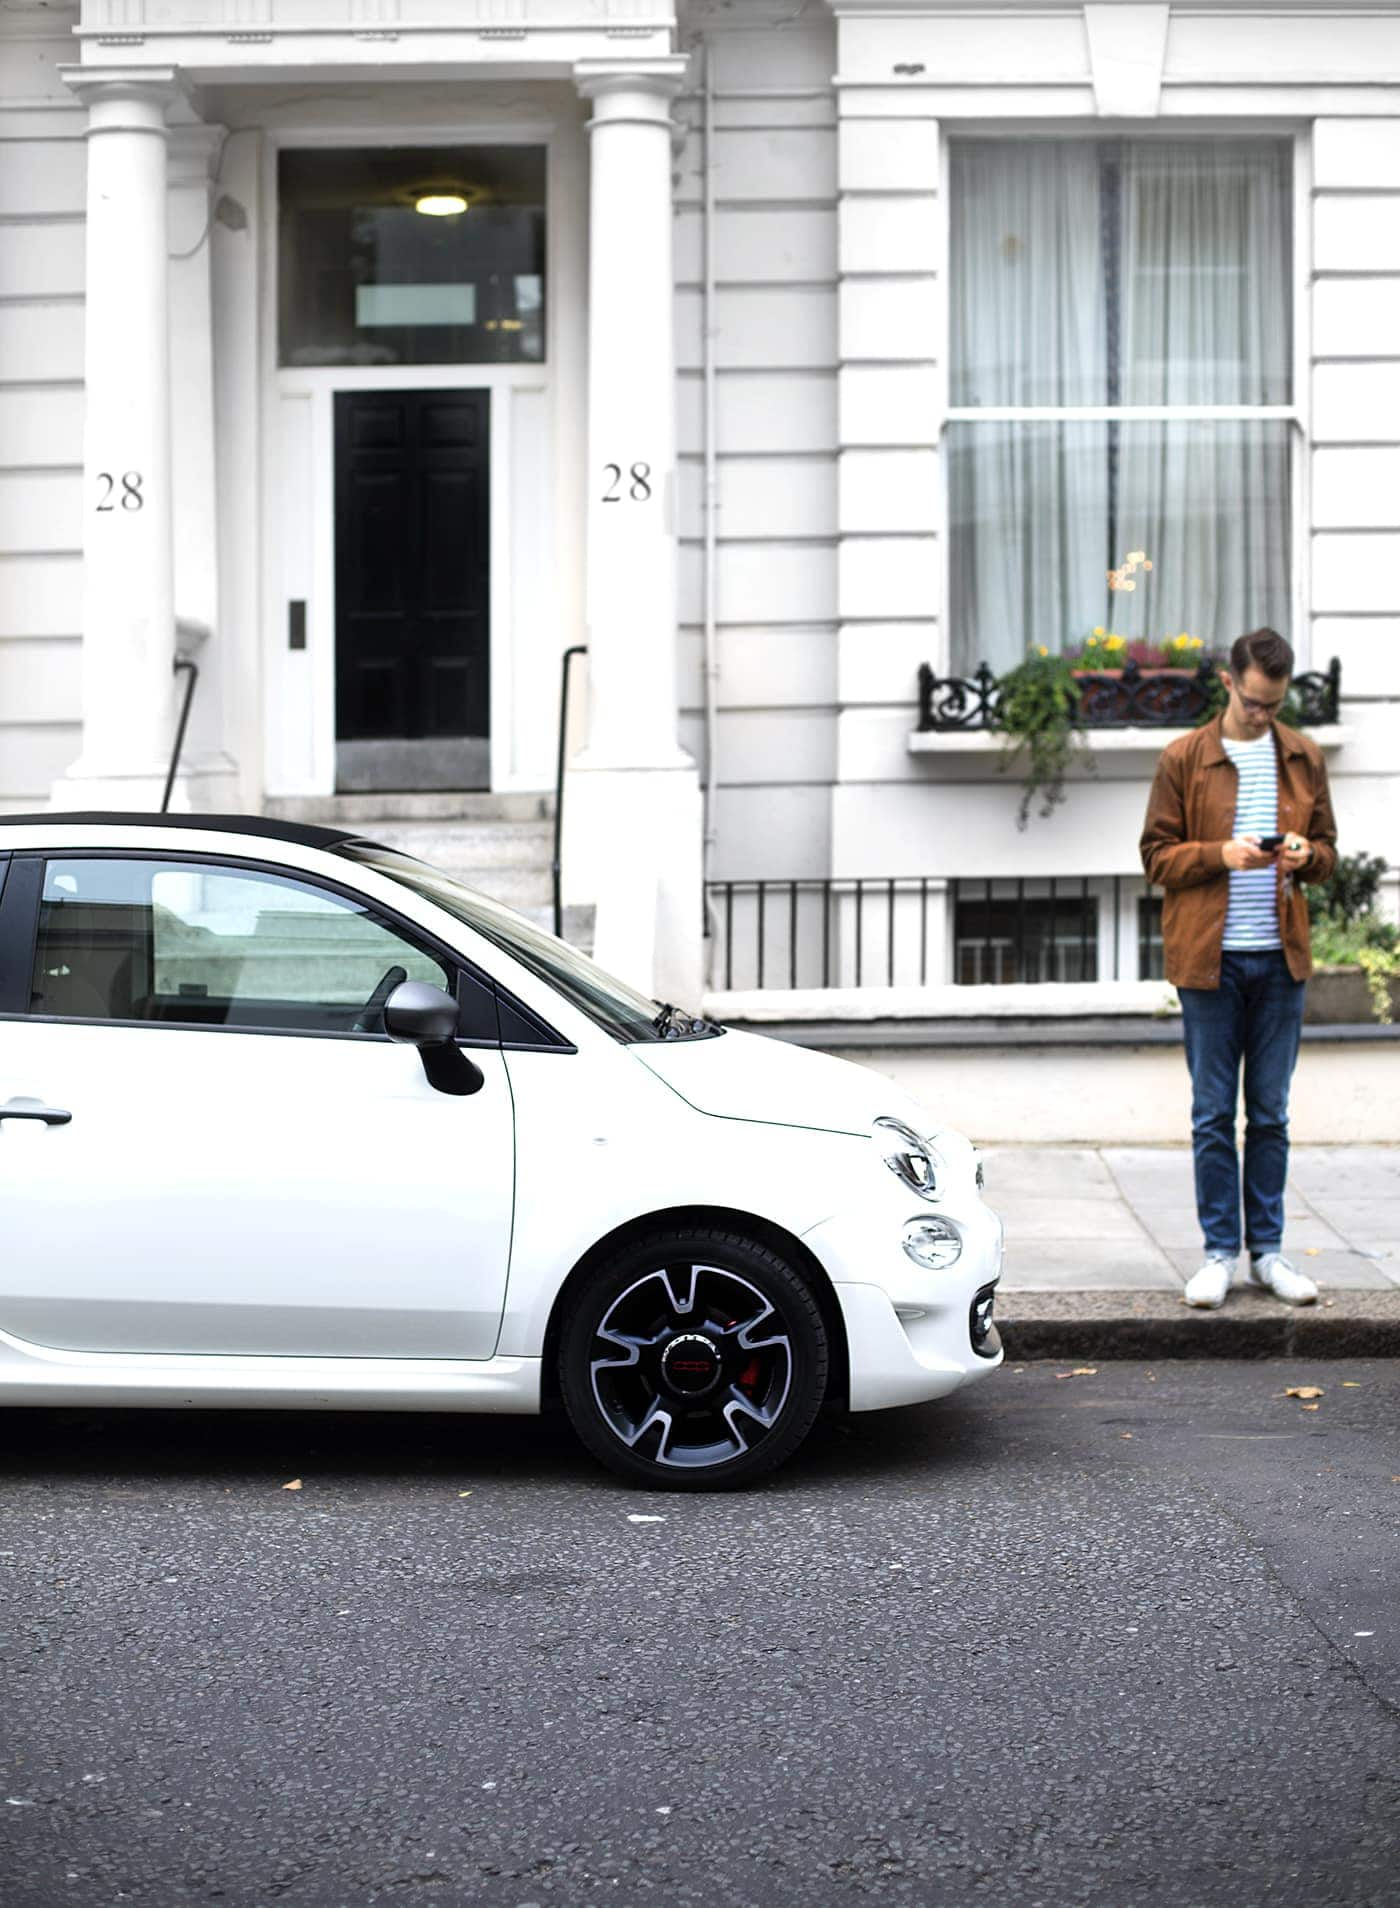 west-london-day-out-with-our-fiat-500s-28